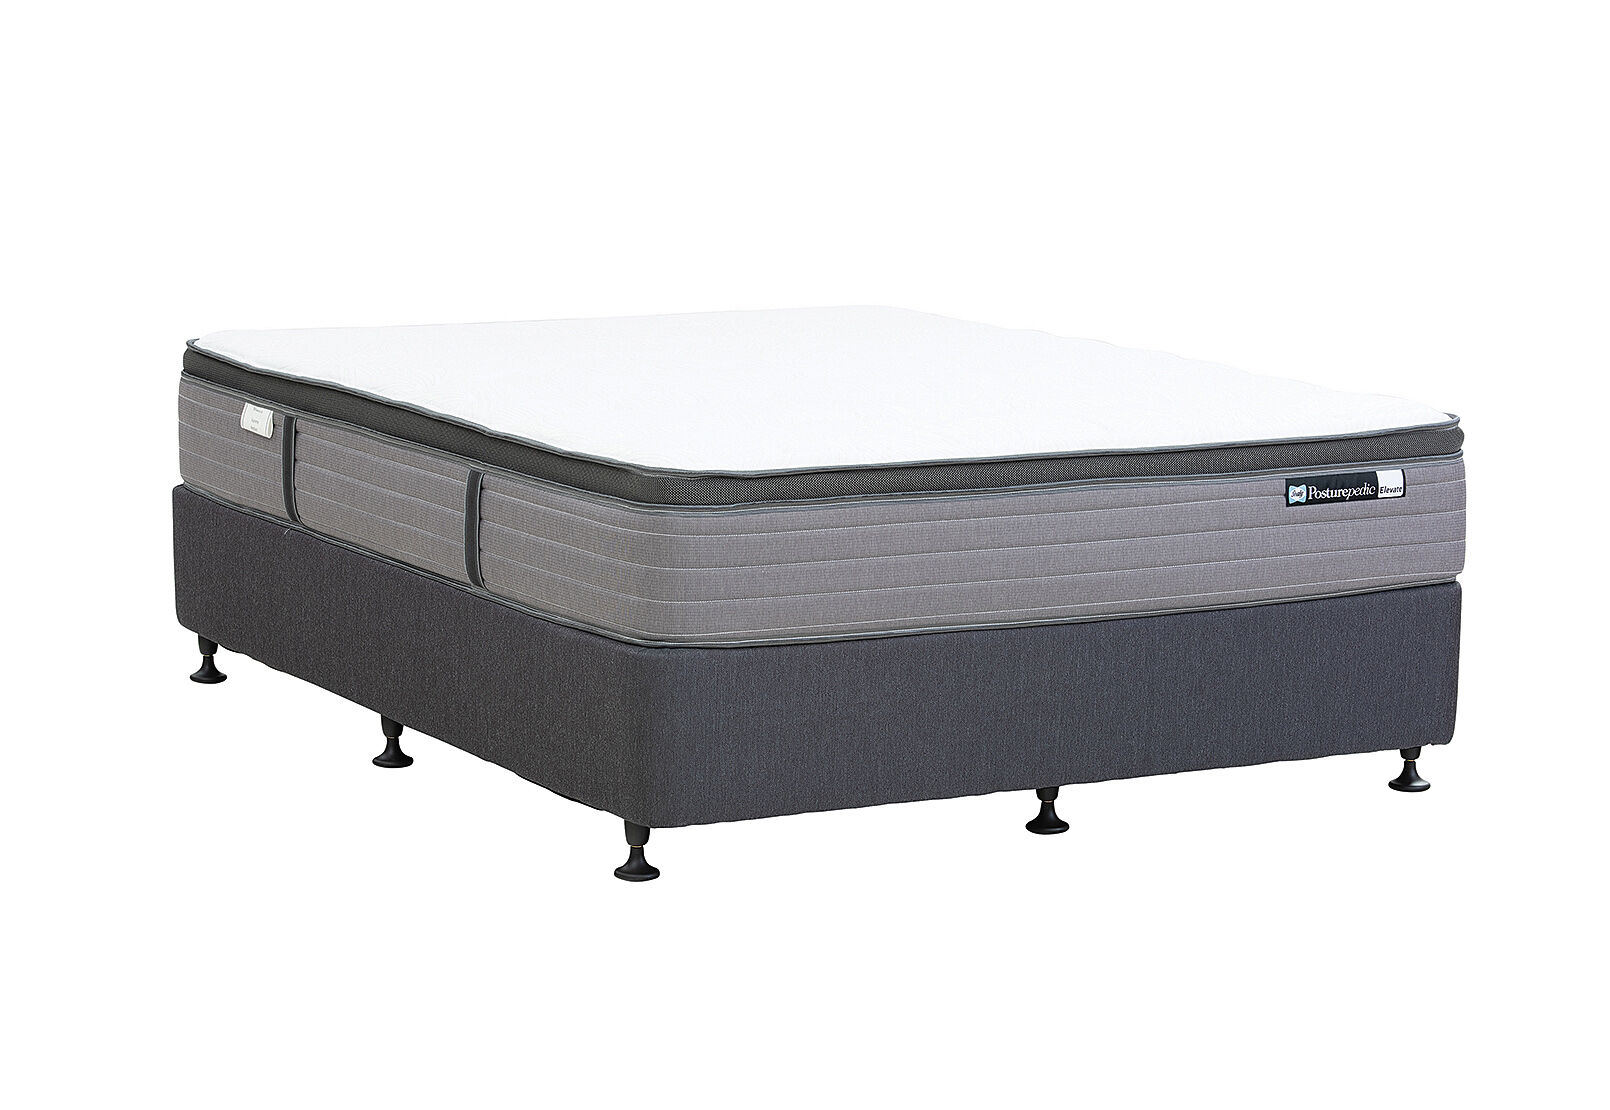 P/PEDIC ELEVATE SUPREME MEDIUM